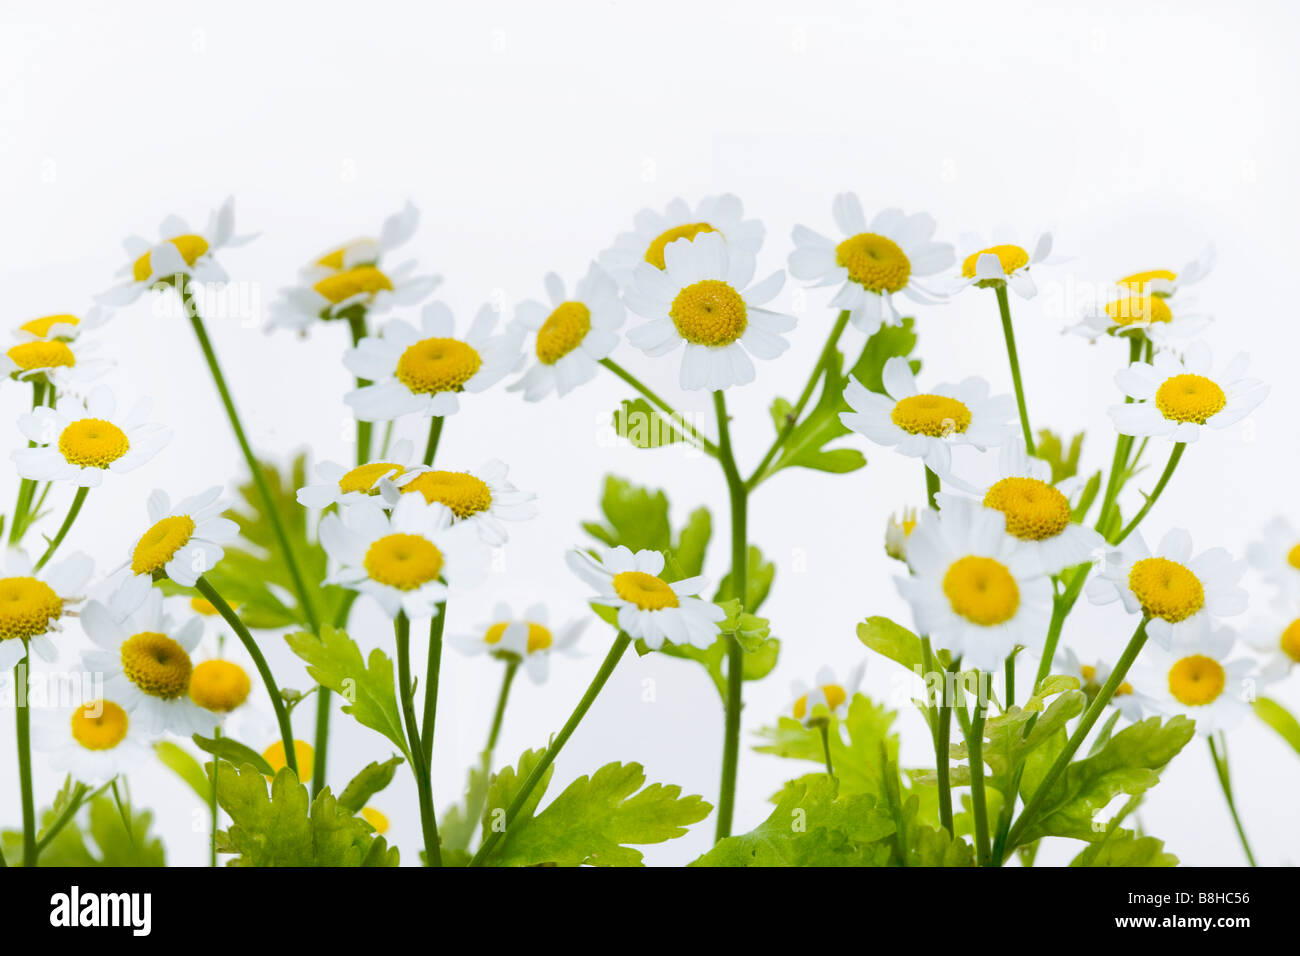 Close up shot of flowering Feverfew Latin Name: Chrysanthemum parthenium - Stock Image